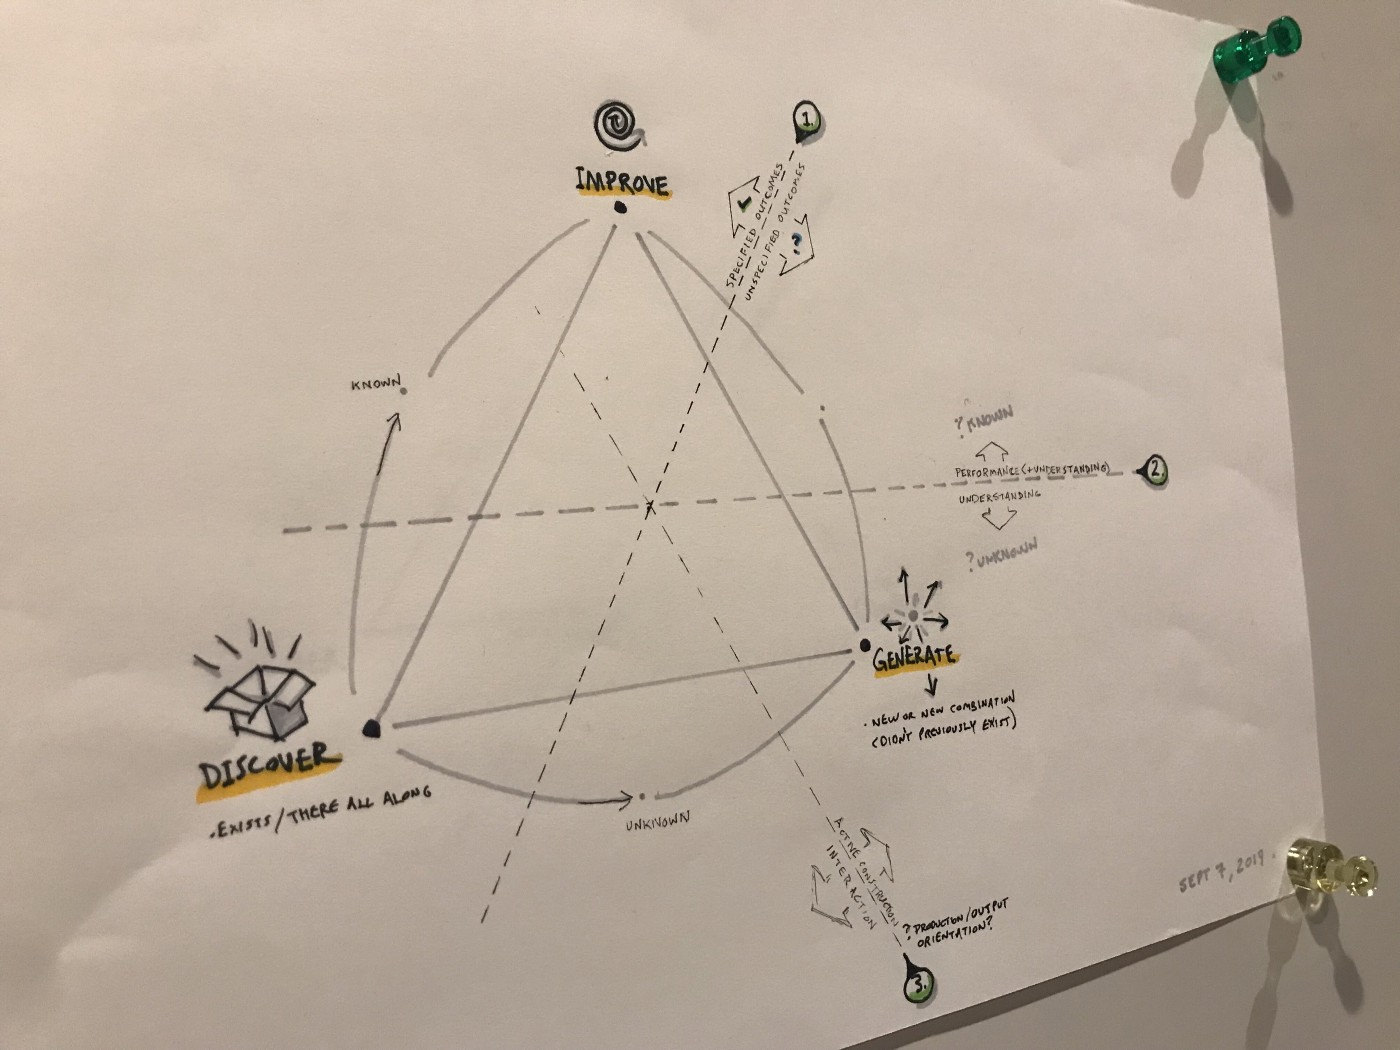 Photo of a hand-sketched concept model